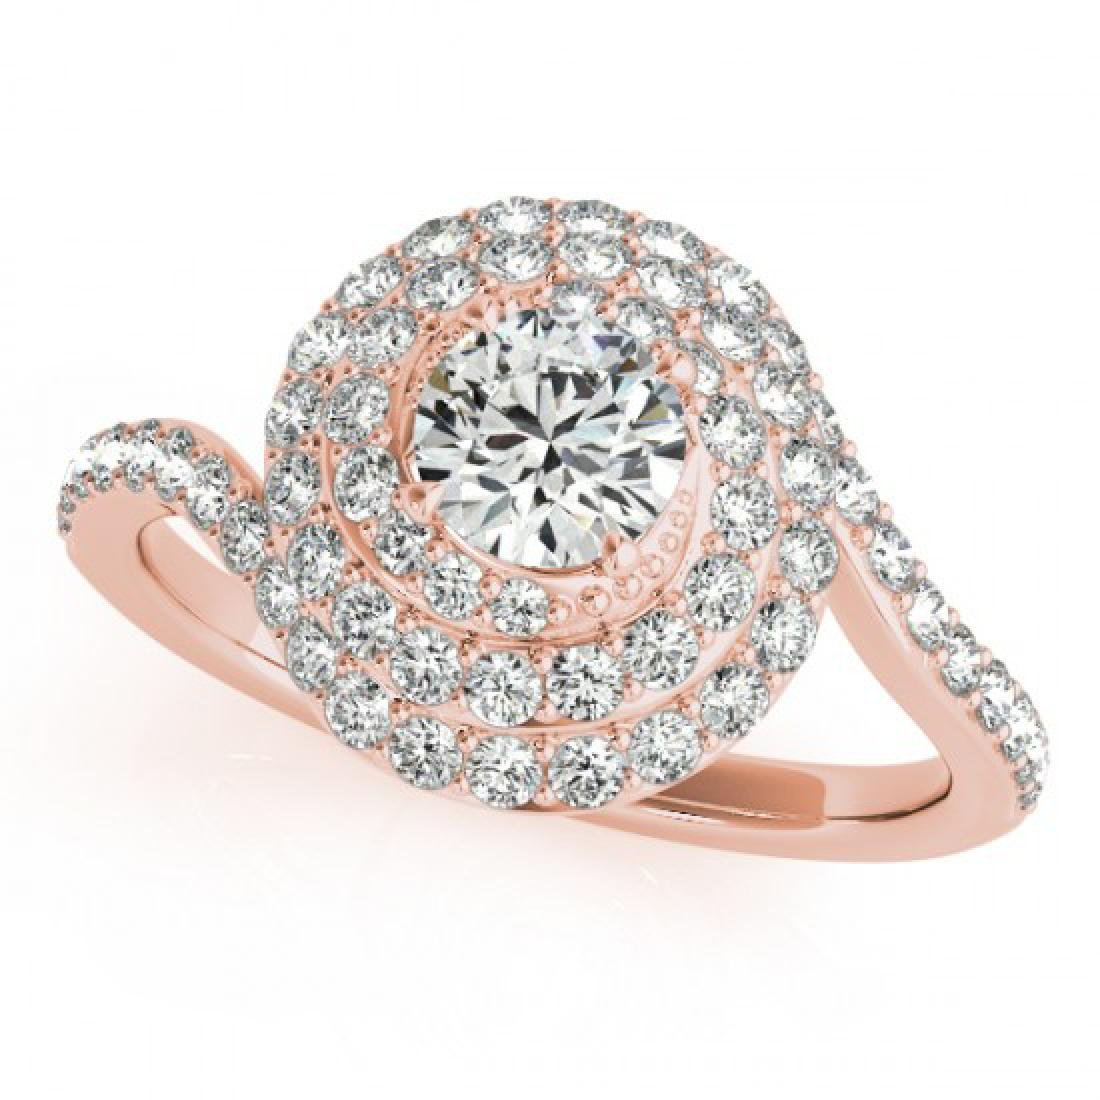 2.11 CTW Certified VS/SI Diamond Solitaire Halo Ring